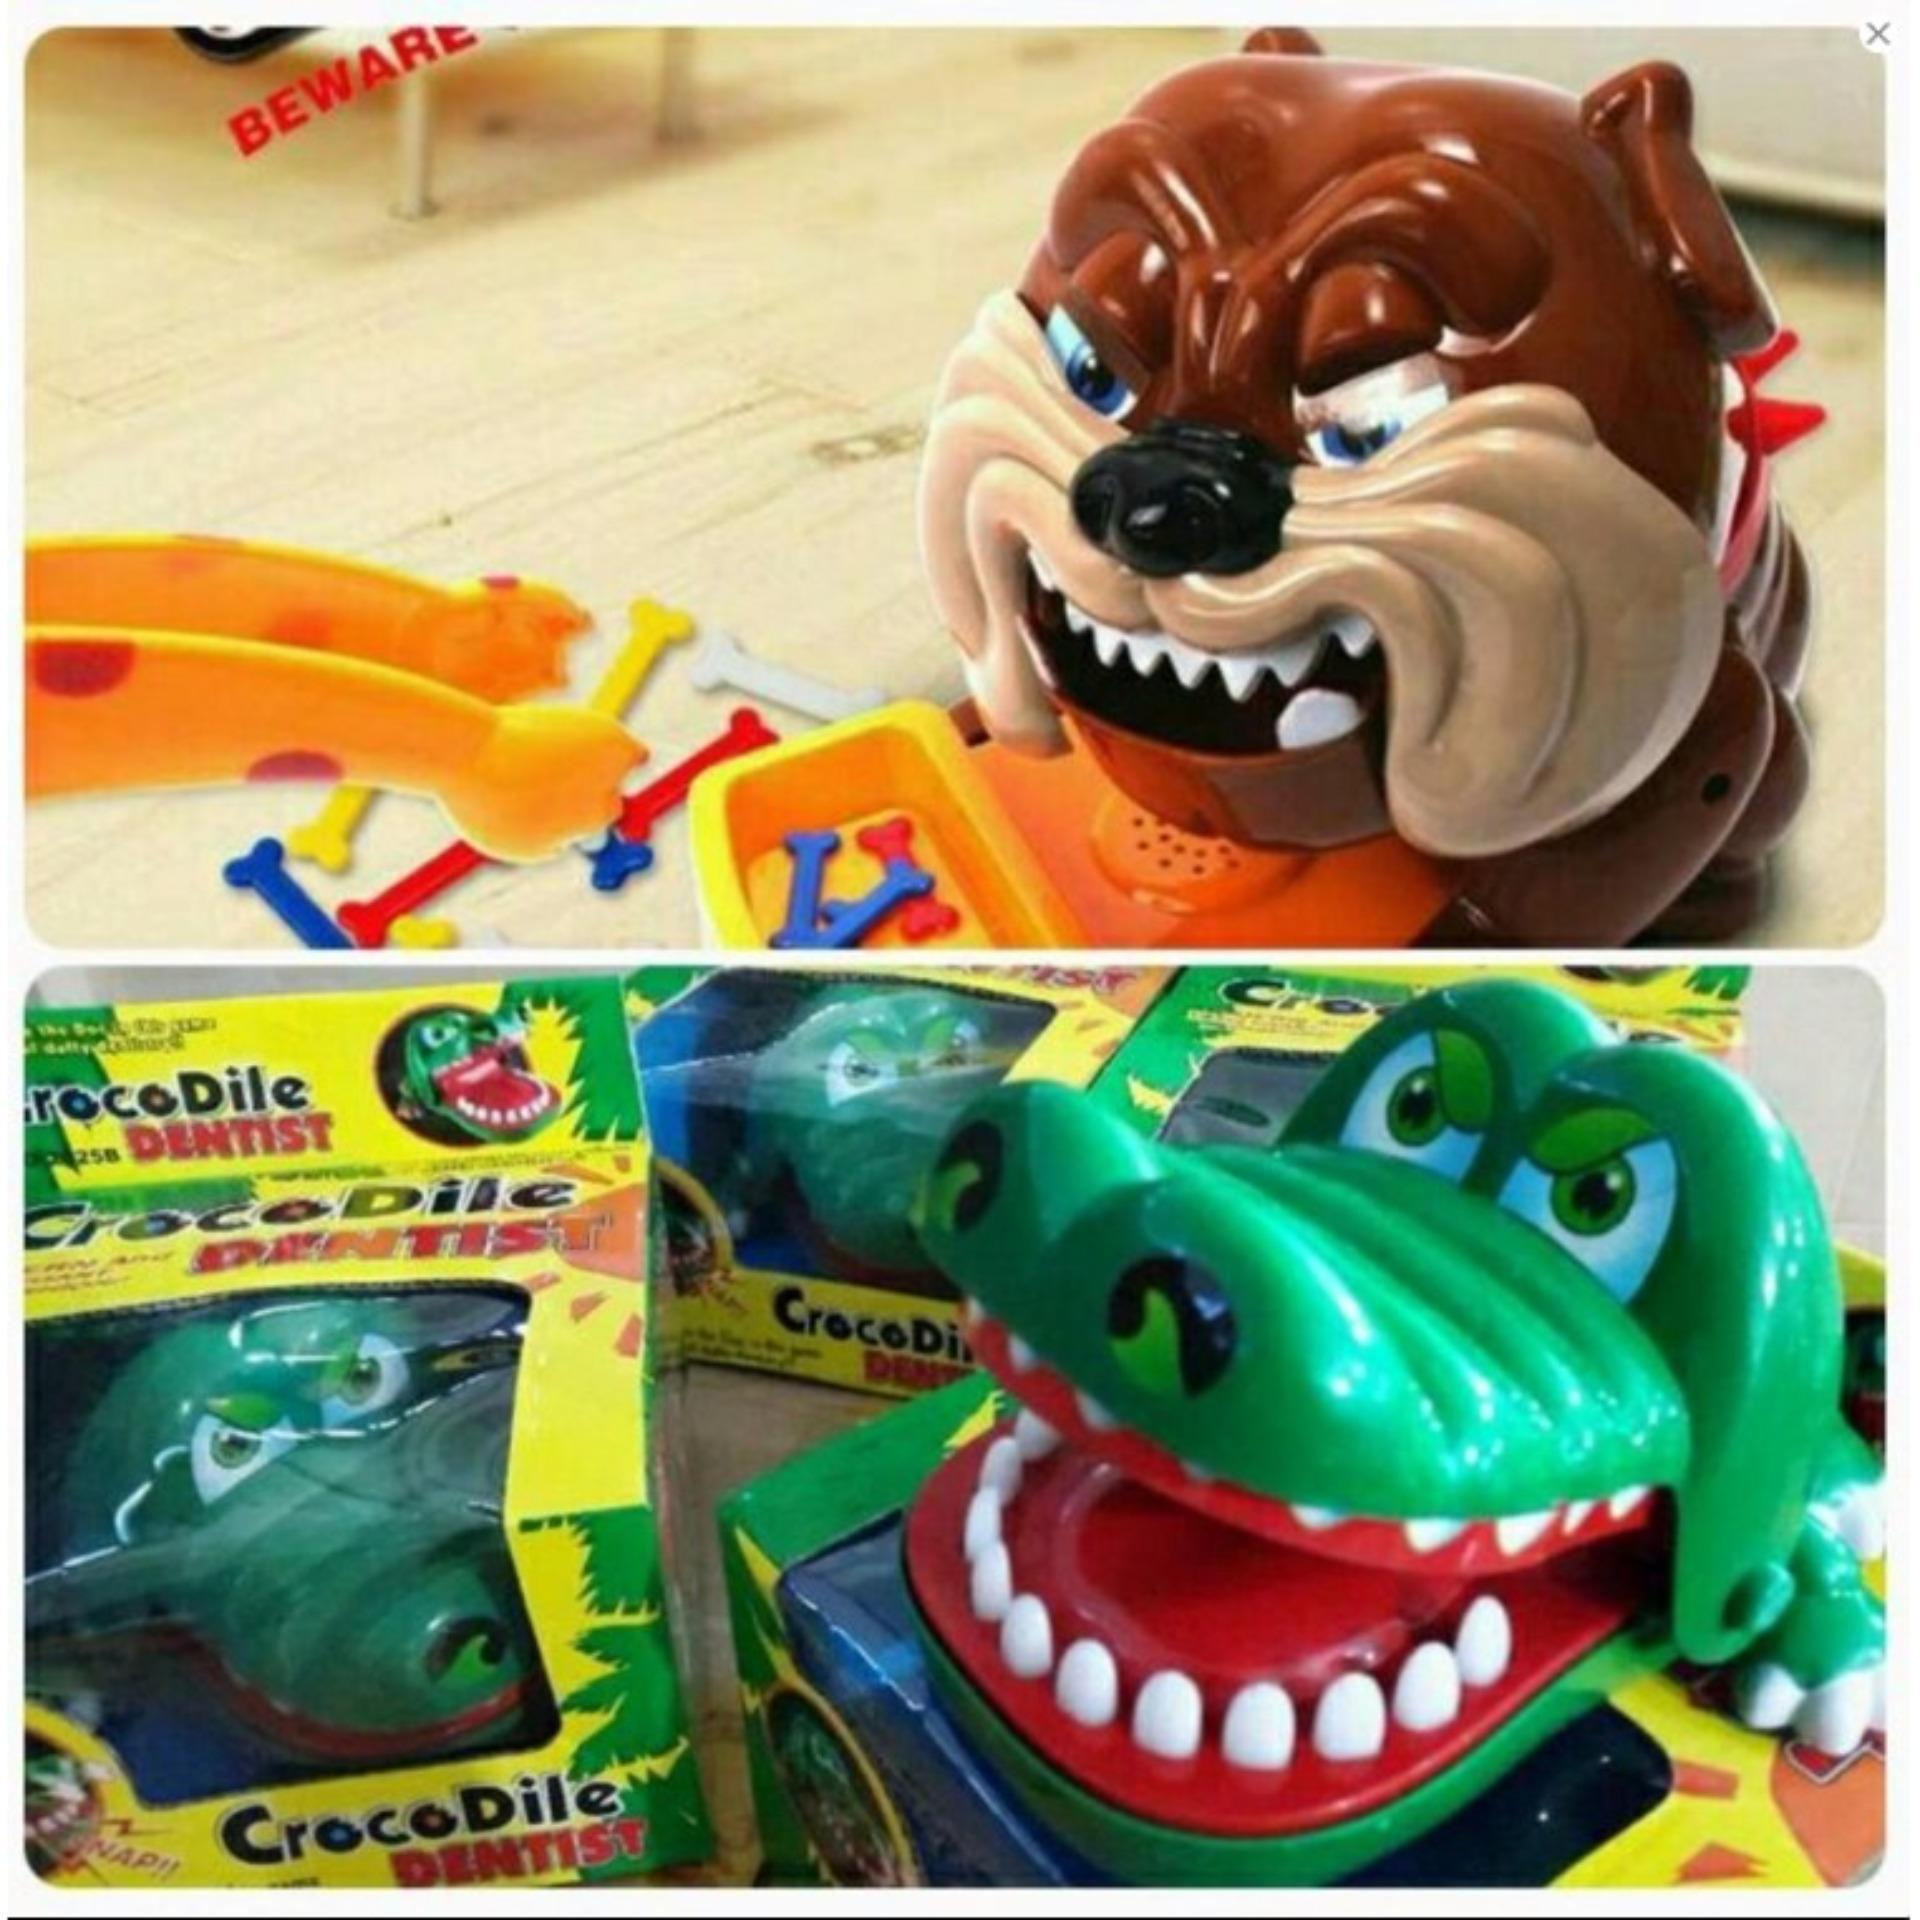 Diskon Sloof King Pirate Roulette Game Crocodile Dentist Bad Dog 3 In 1 Packet West Kalimantan